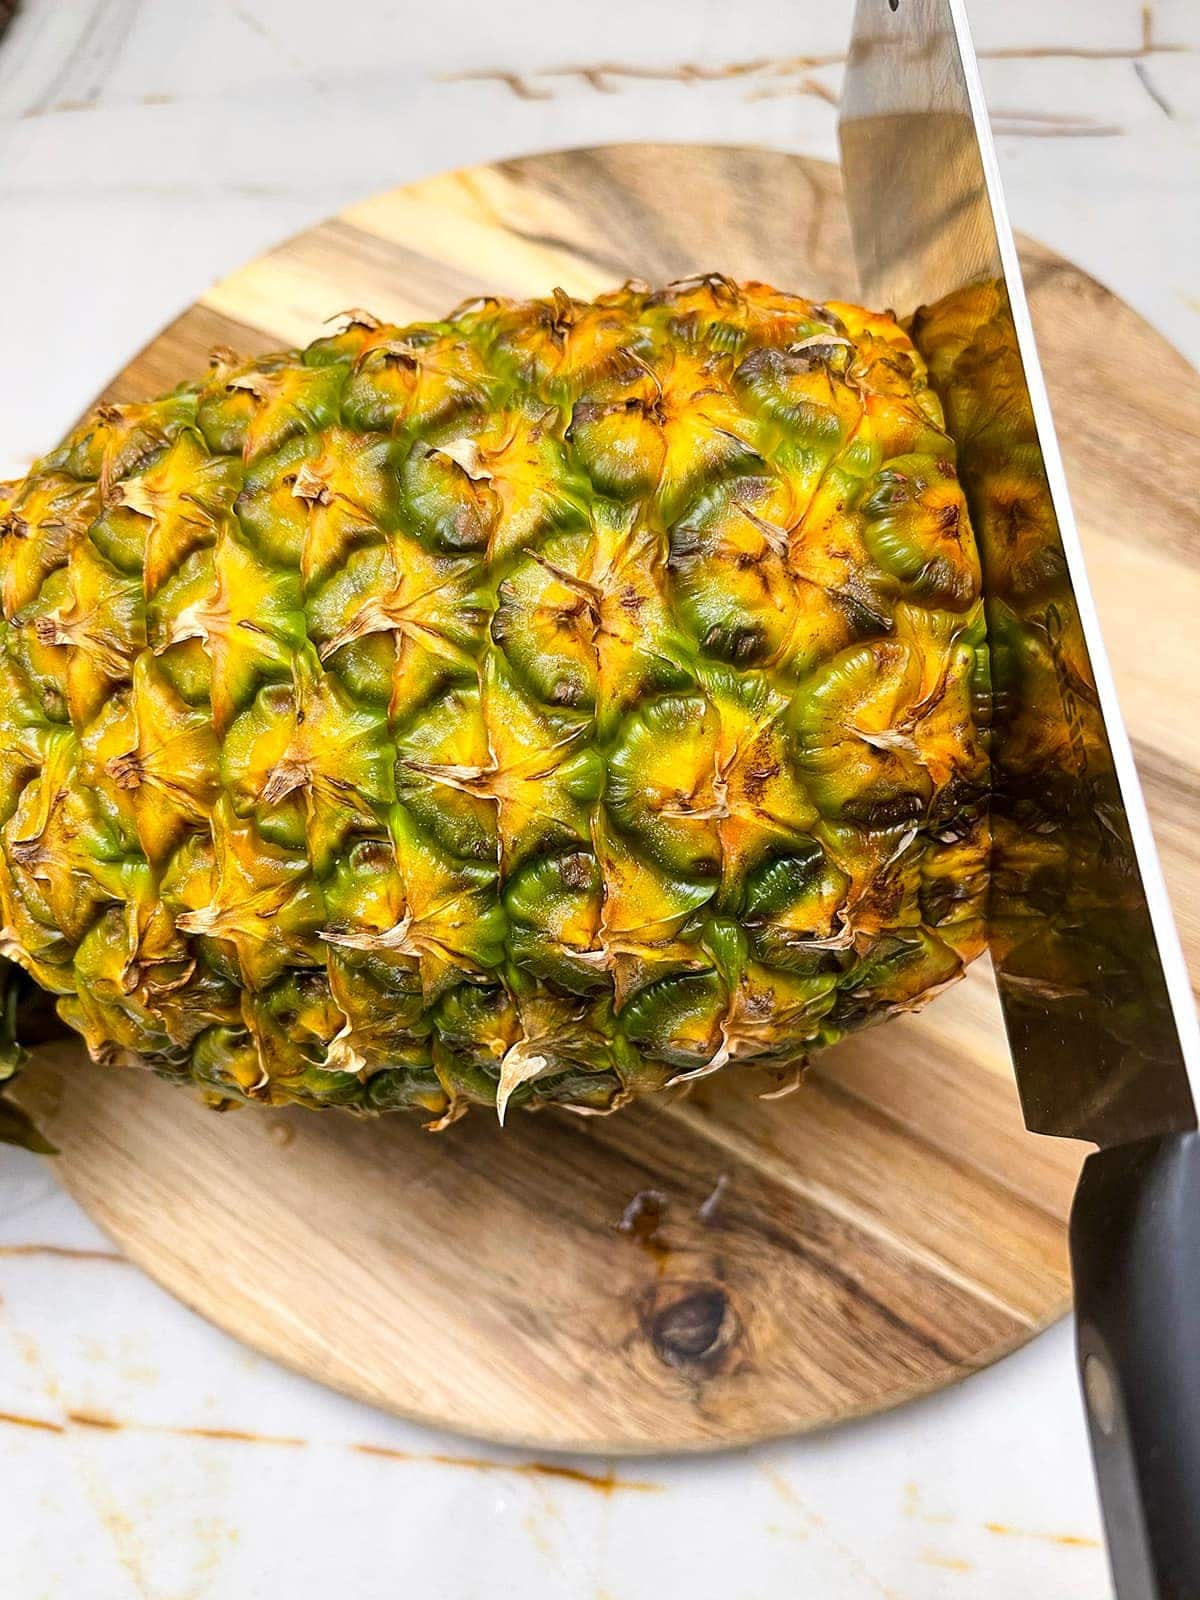 how to peel a pineapple, cutting the base off the pineapple with a knife